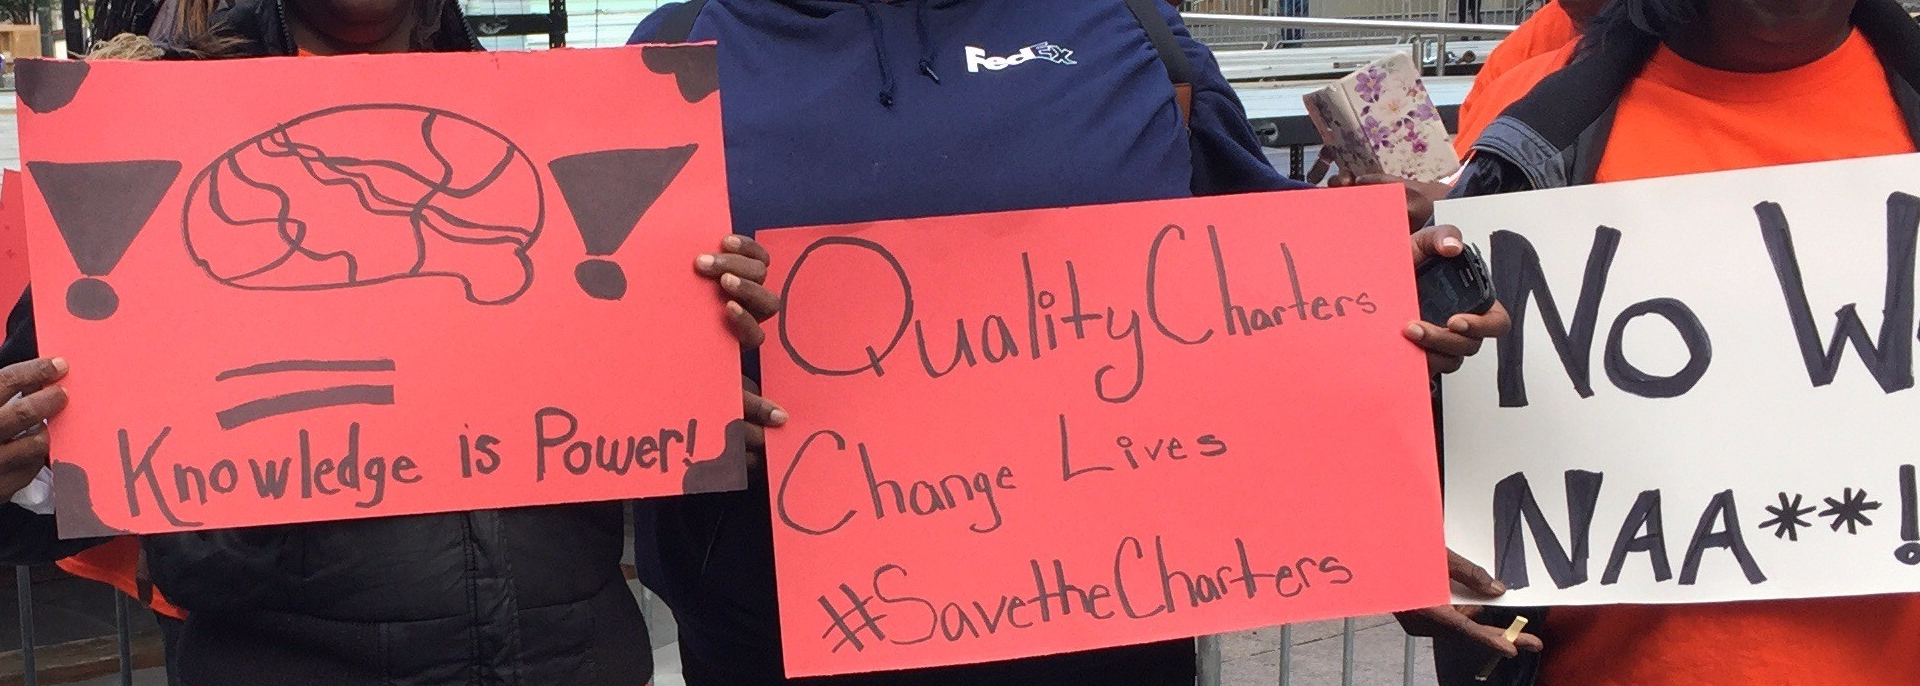 Choice Without Accountability Puts >> Naacp S Misguided Moratorium On Charter Schools Puts Children Dead